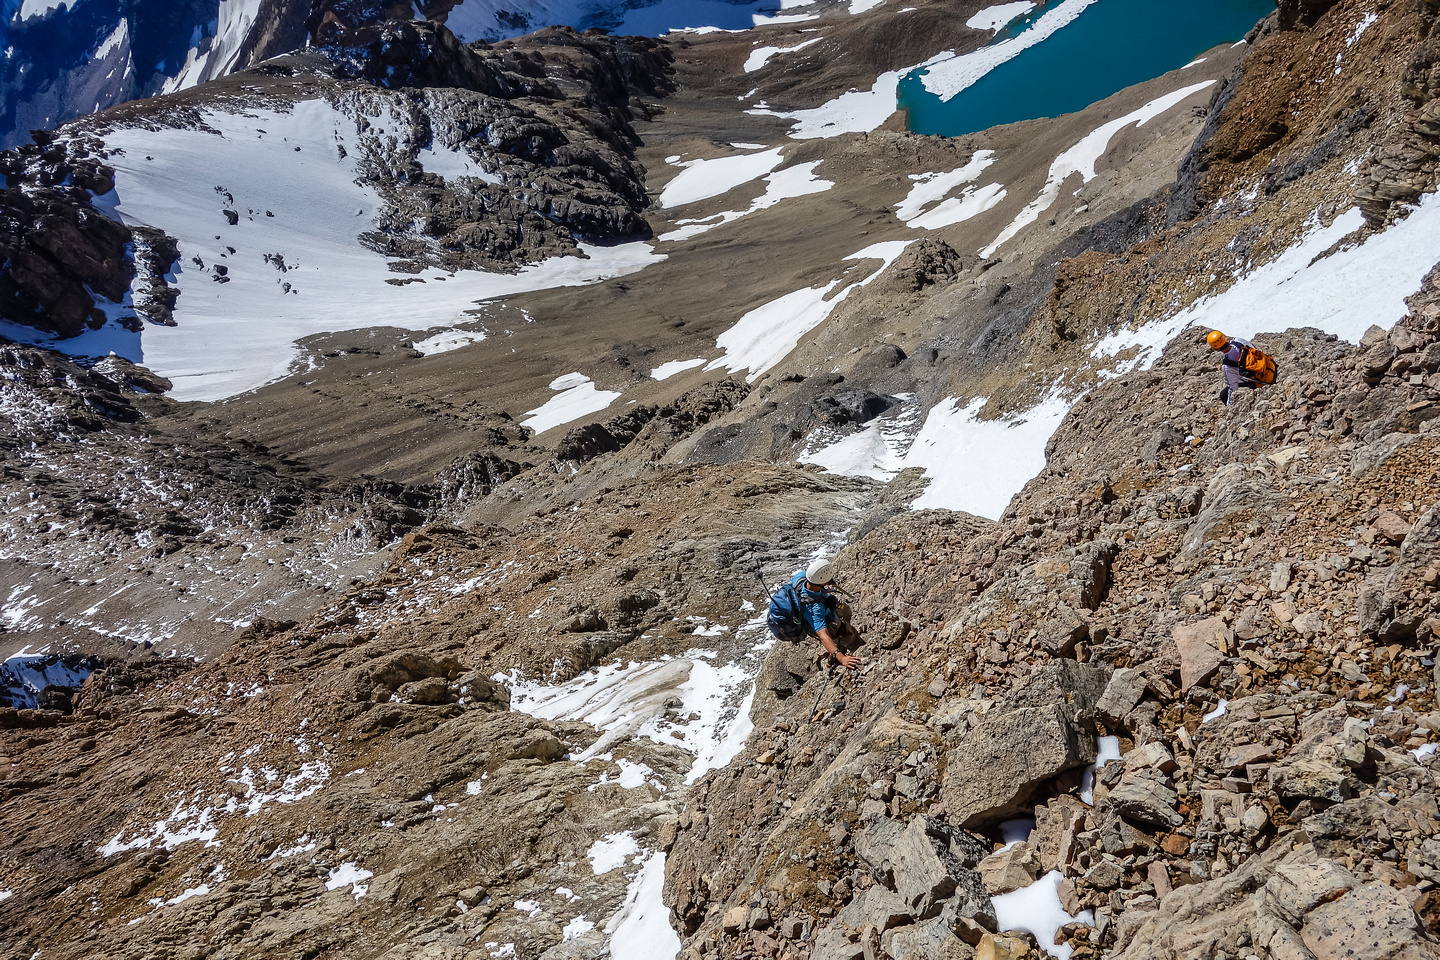 Downclimbing the face as we traverse skier's left to the 9900' col.